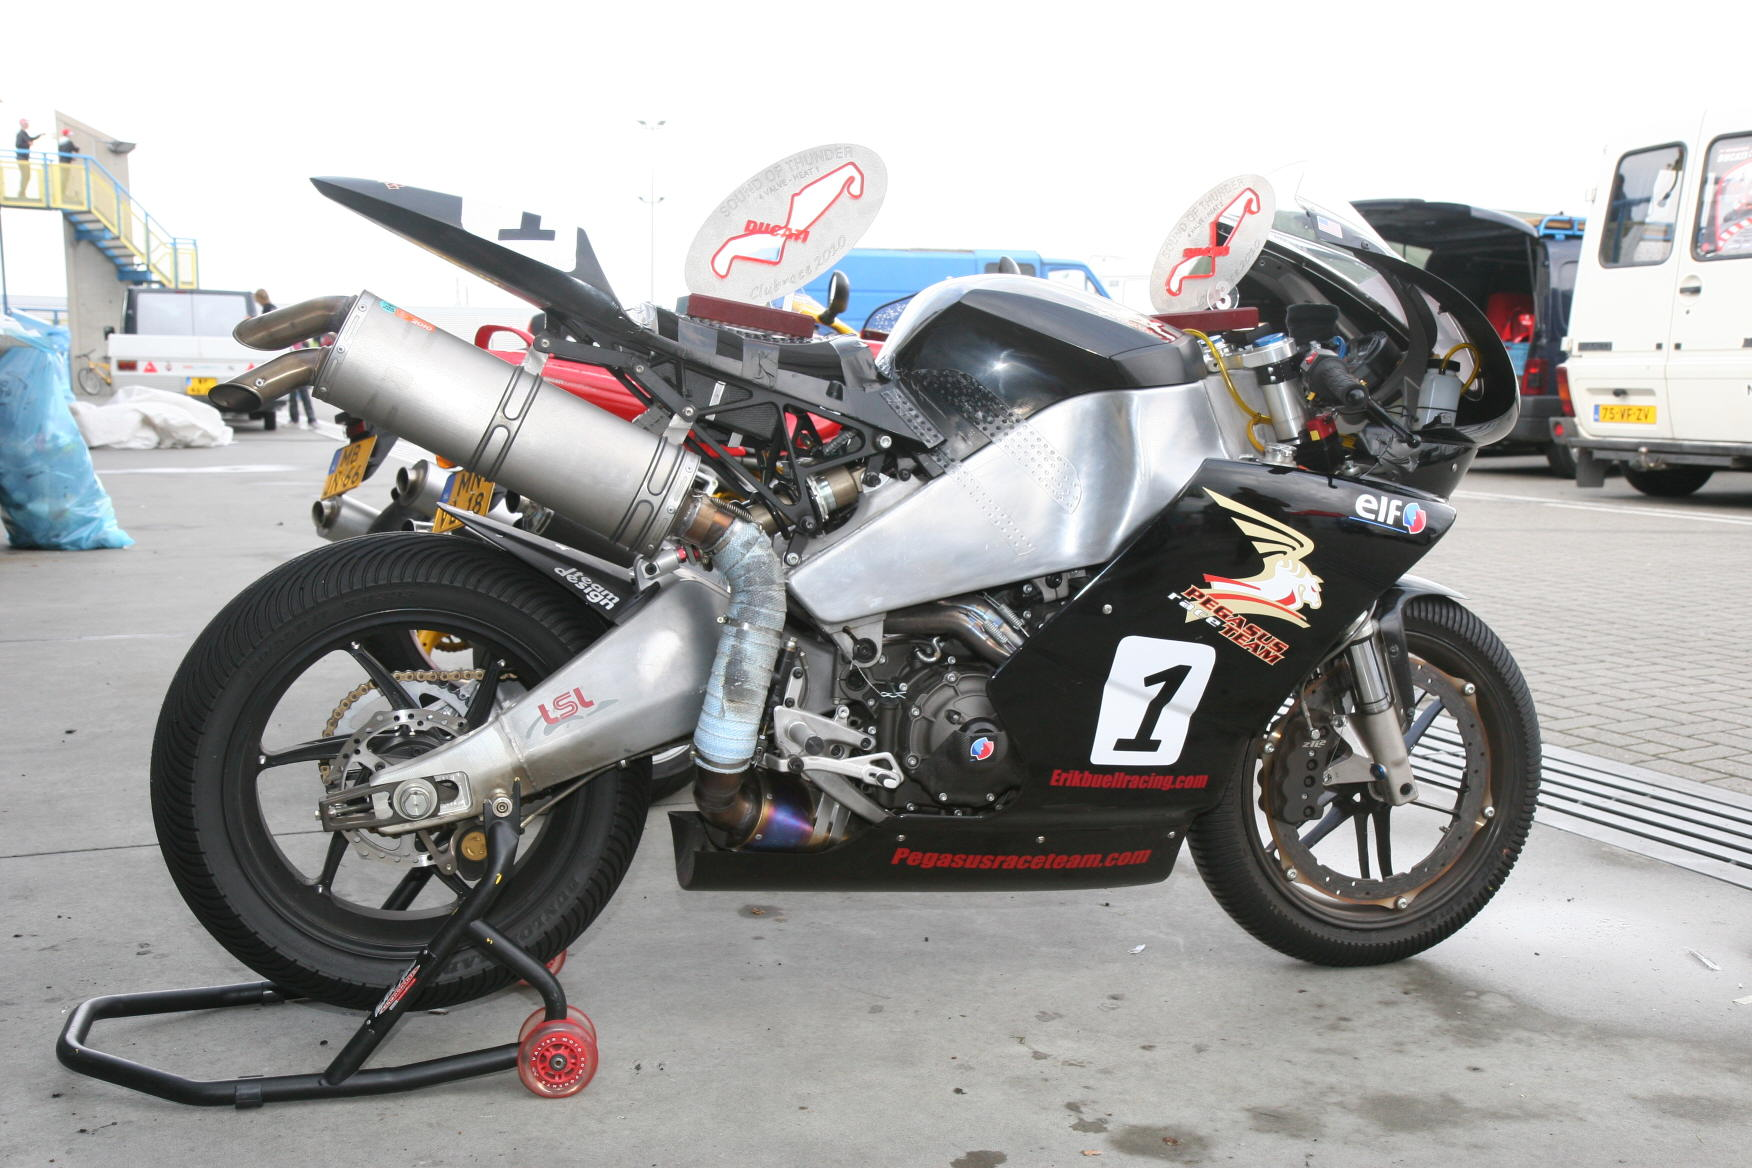 Ebr in world superbike archive erik buell racing motorcycle forum sponsored by af1 racing inc